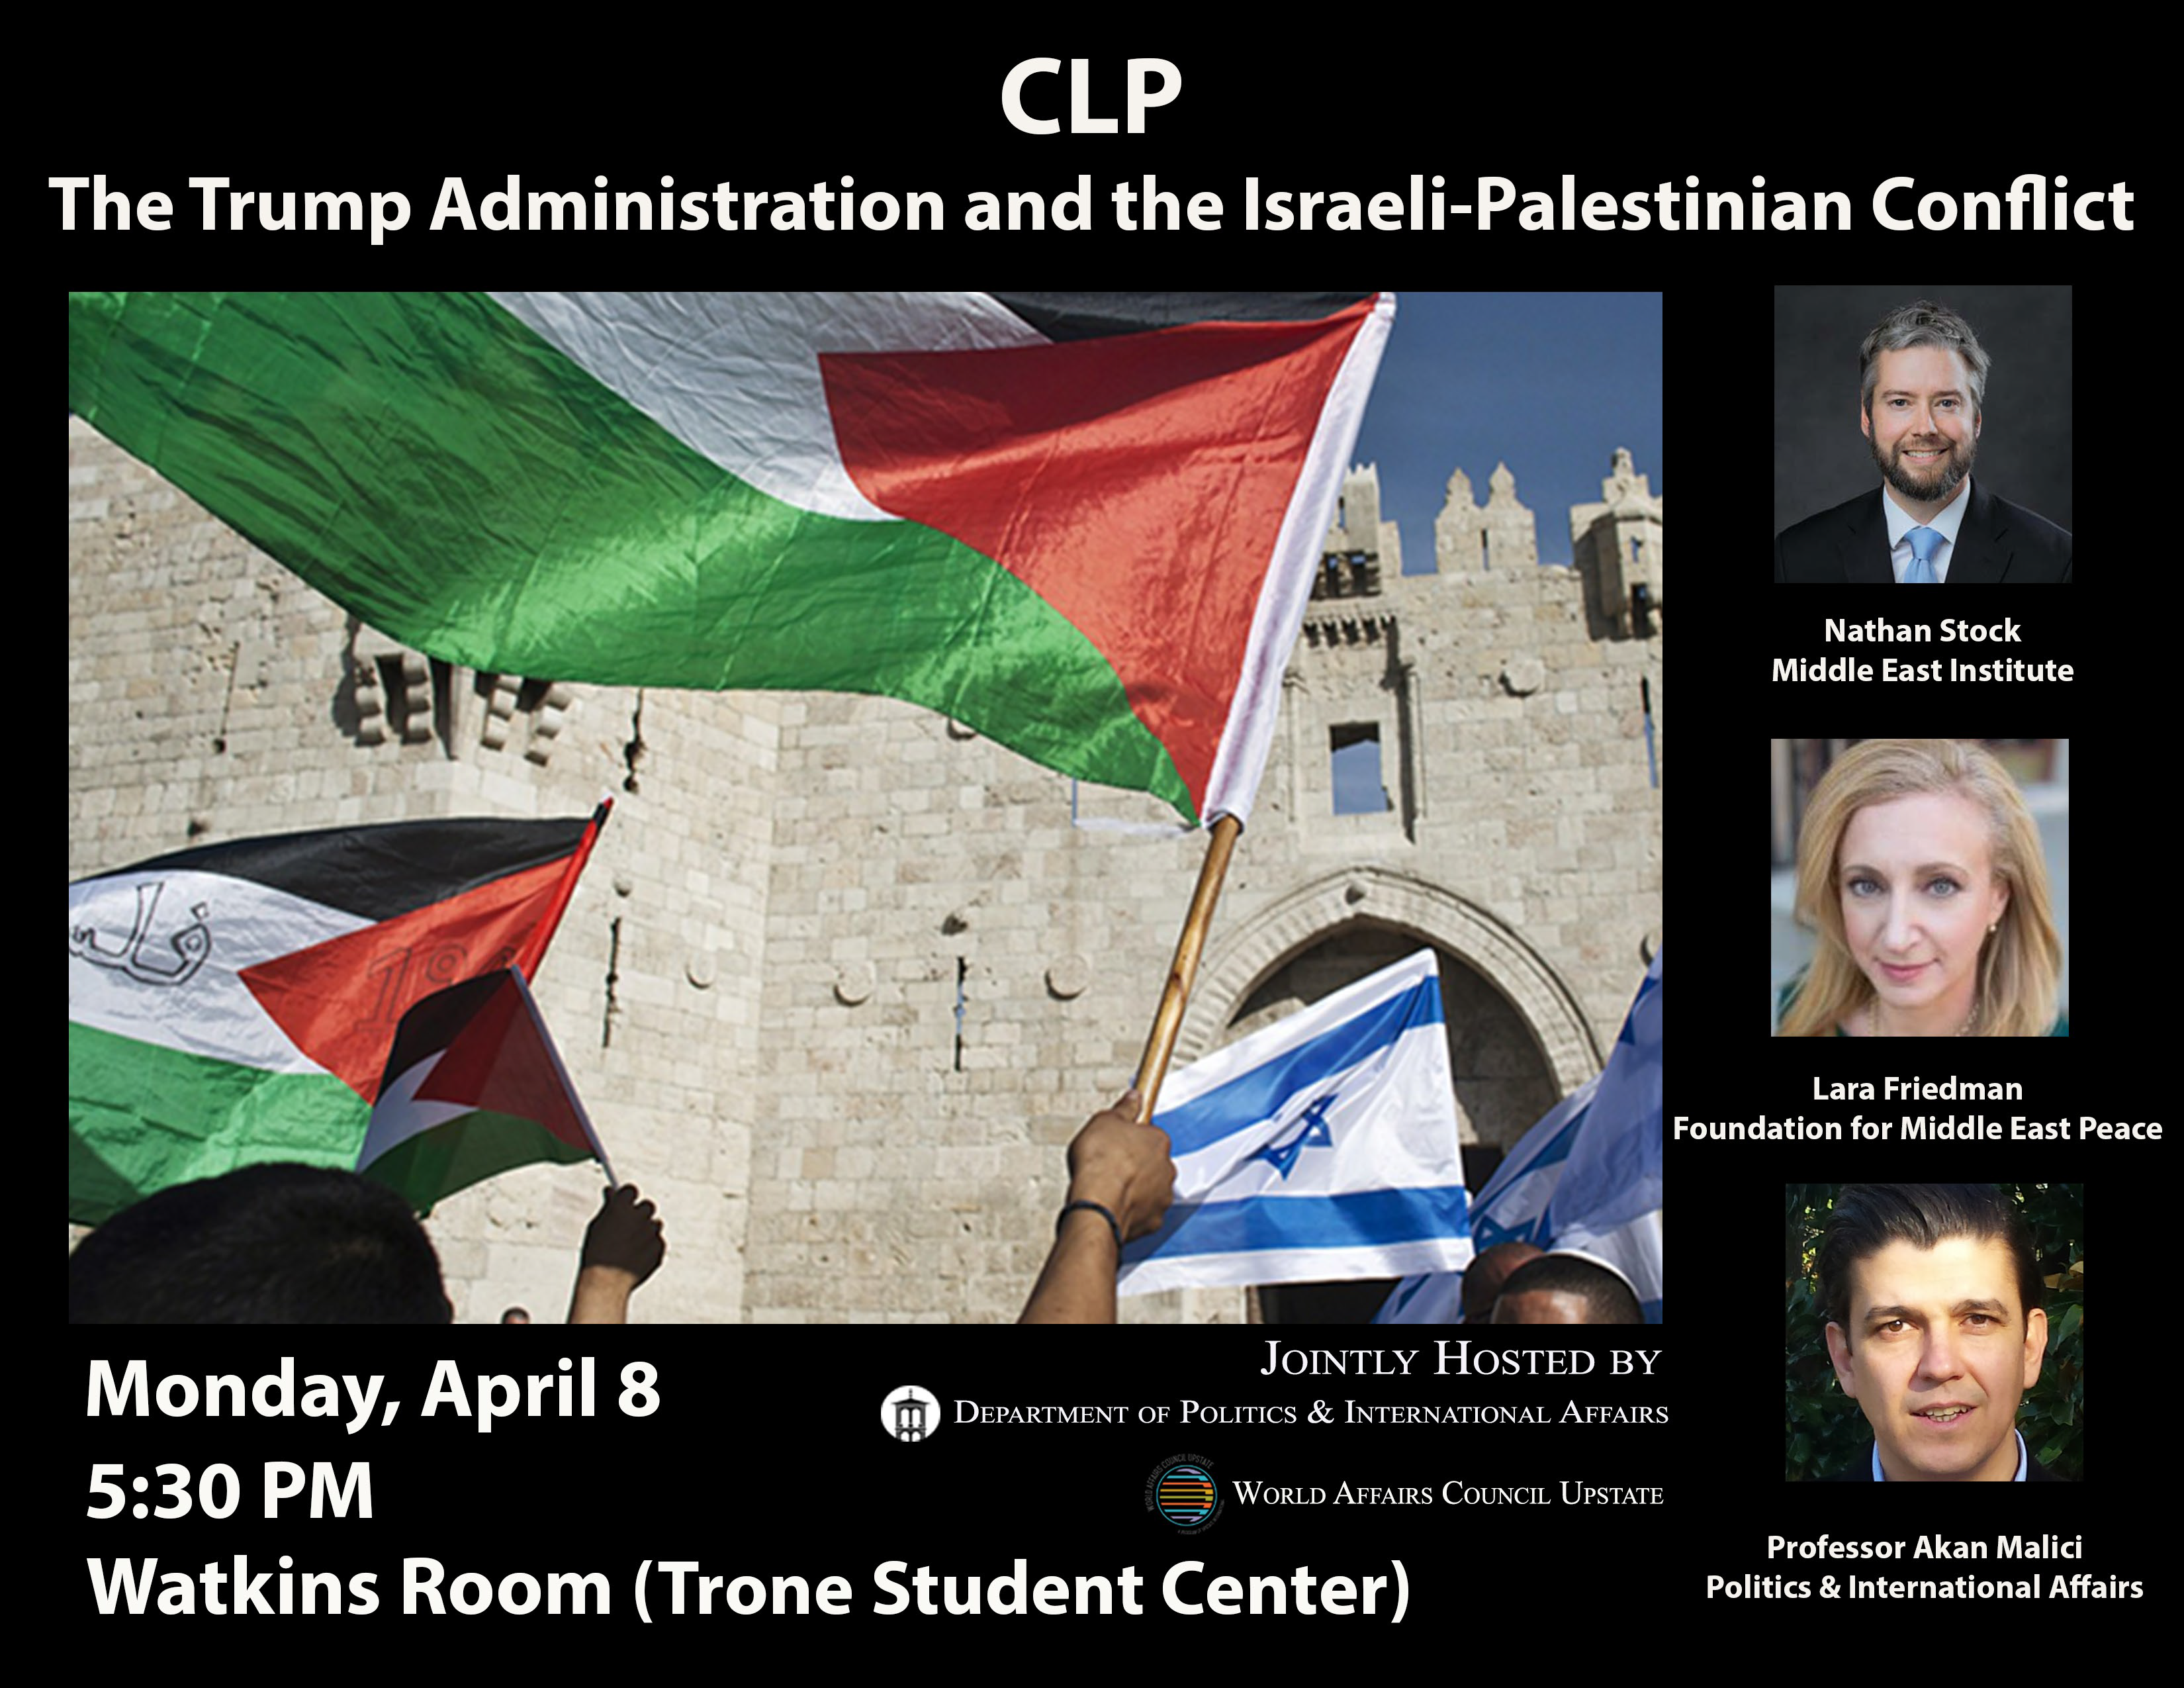 The Trump Administration and the Israeli-Palestinian Conflict @ Furman University, Watkins Room (Trone Student Center)